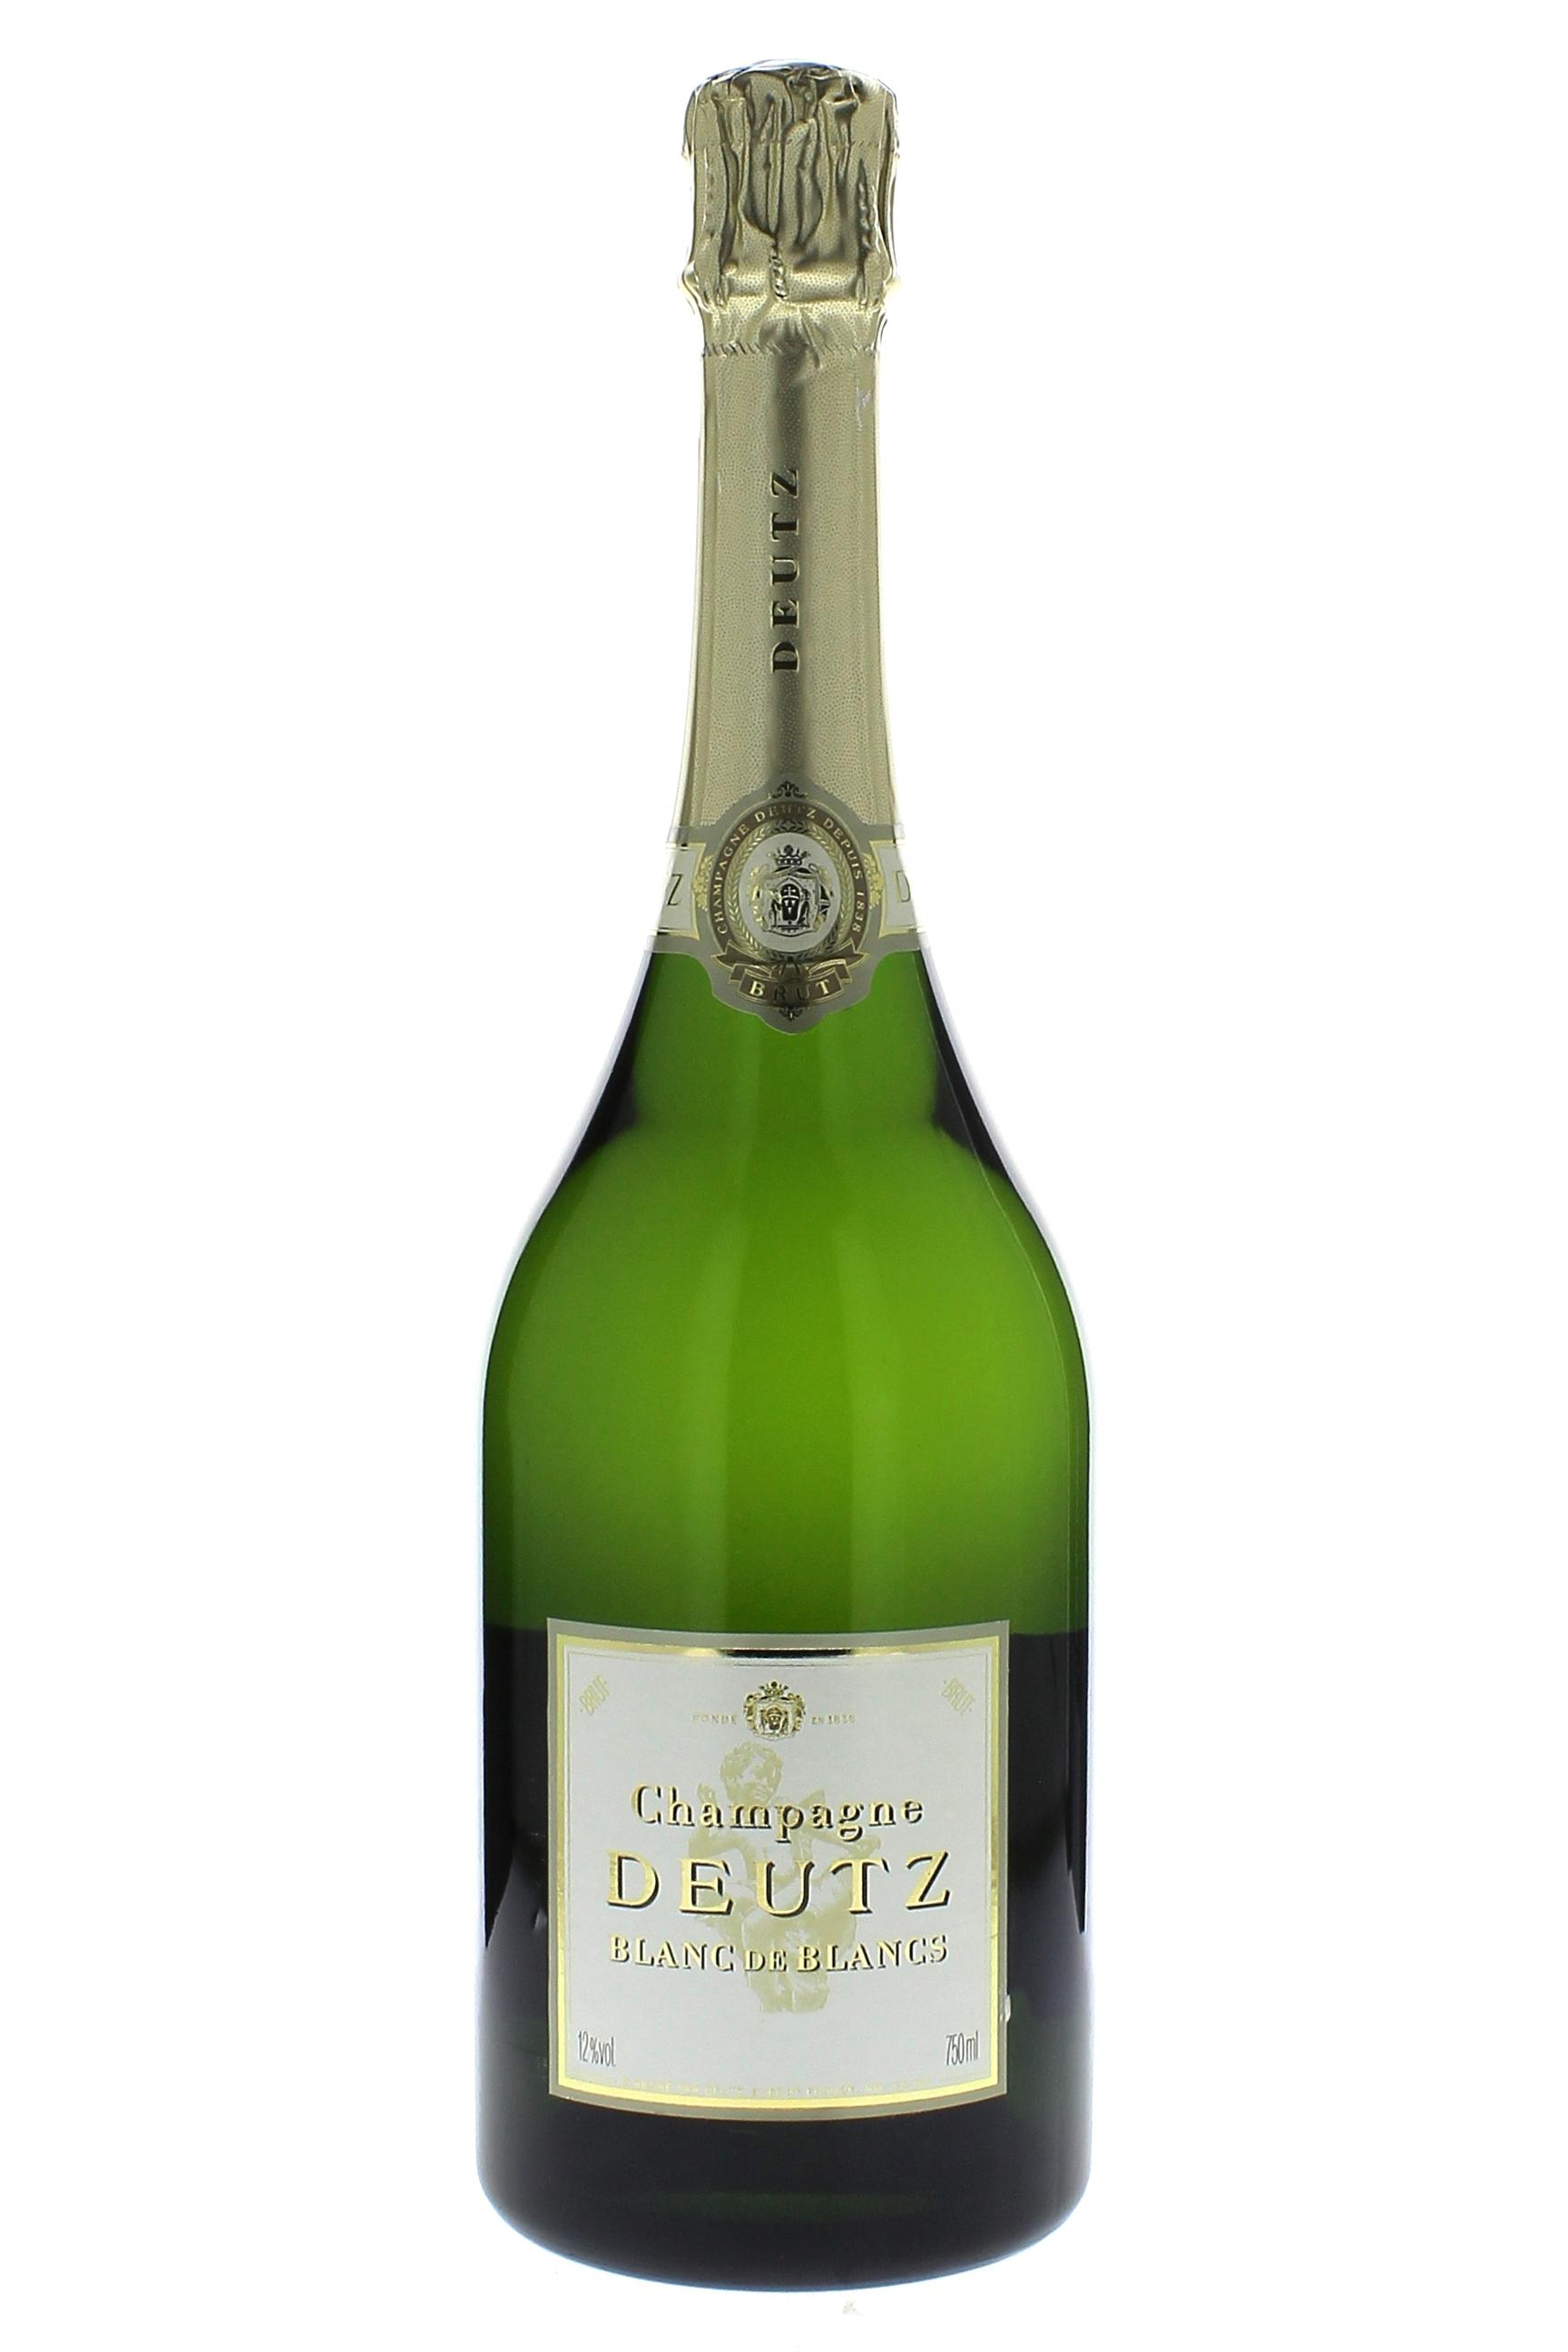 deutz blanc de blancs 2010 vin effervescents. Black Bedroom Furniture Sets. Home Design Ideas